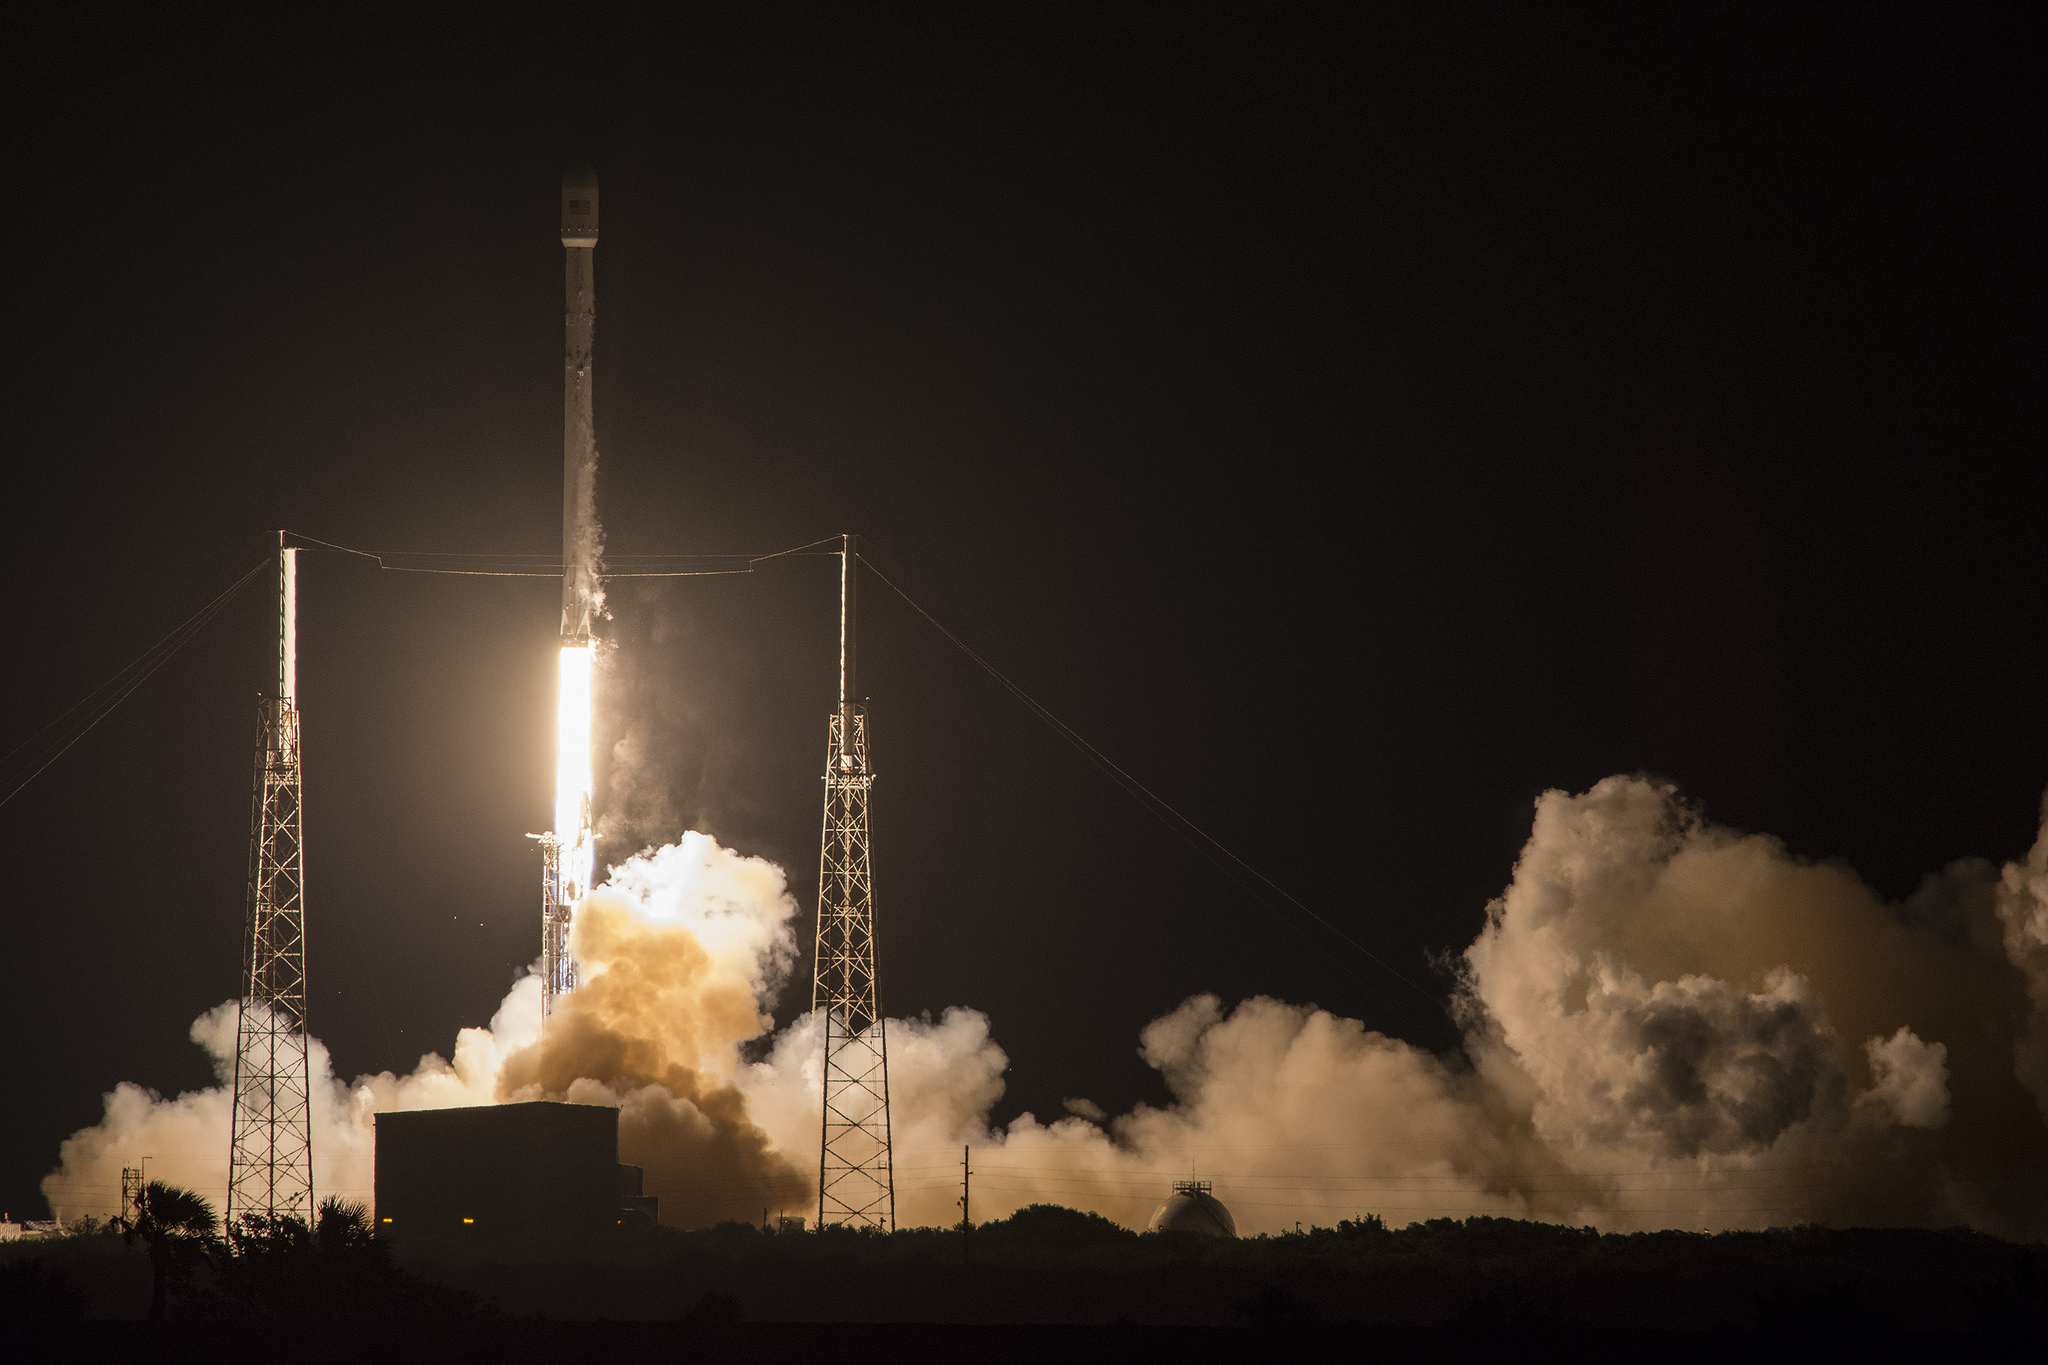 Launch of SpaceX Falcon 9 carrying JCSAT-14 Japanese communications satellite to orbit on May 6, 2016 at 1:21 a.m. EDT from Space Launch Complex 40 at Cape Canaveral Air Force Station, Fl.  Credit: SpaceX